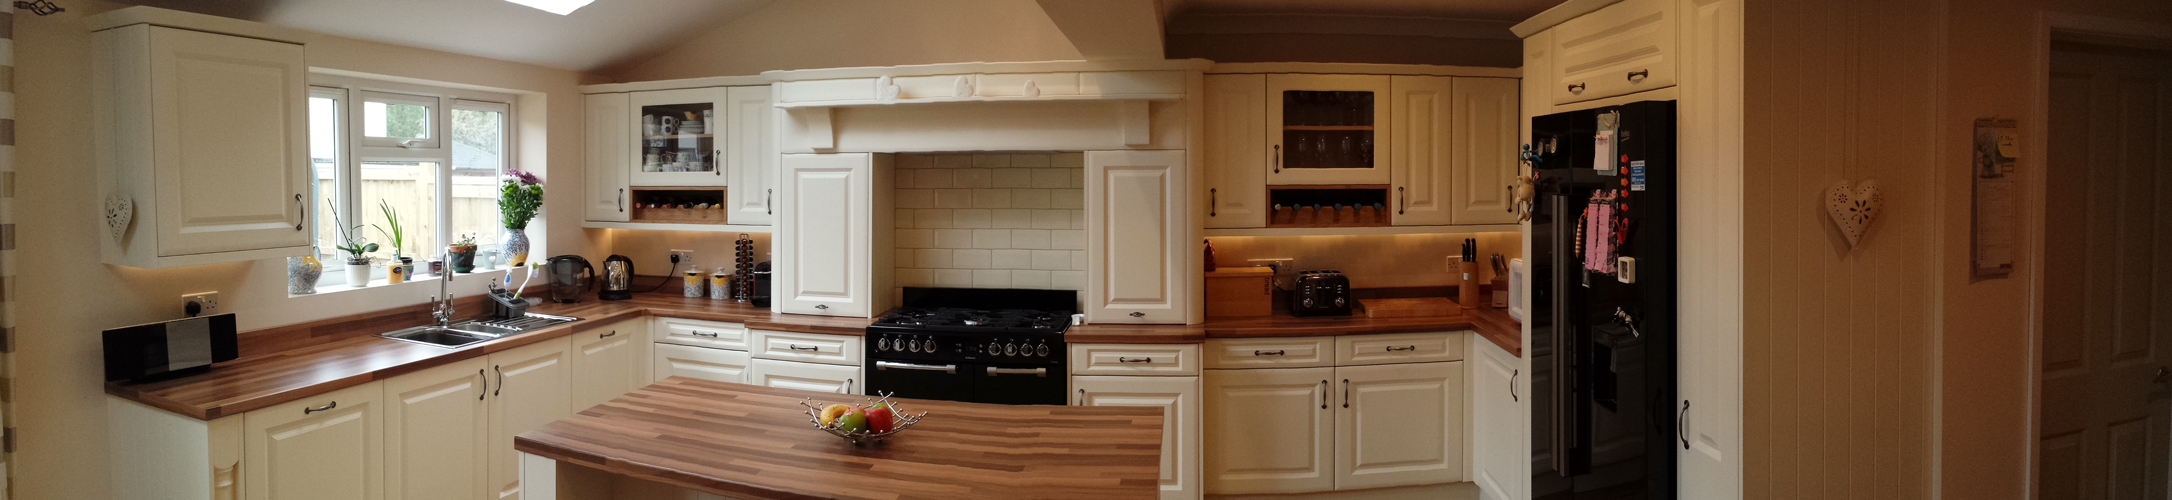 traditional-kitchen-4